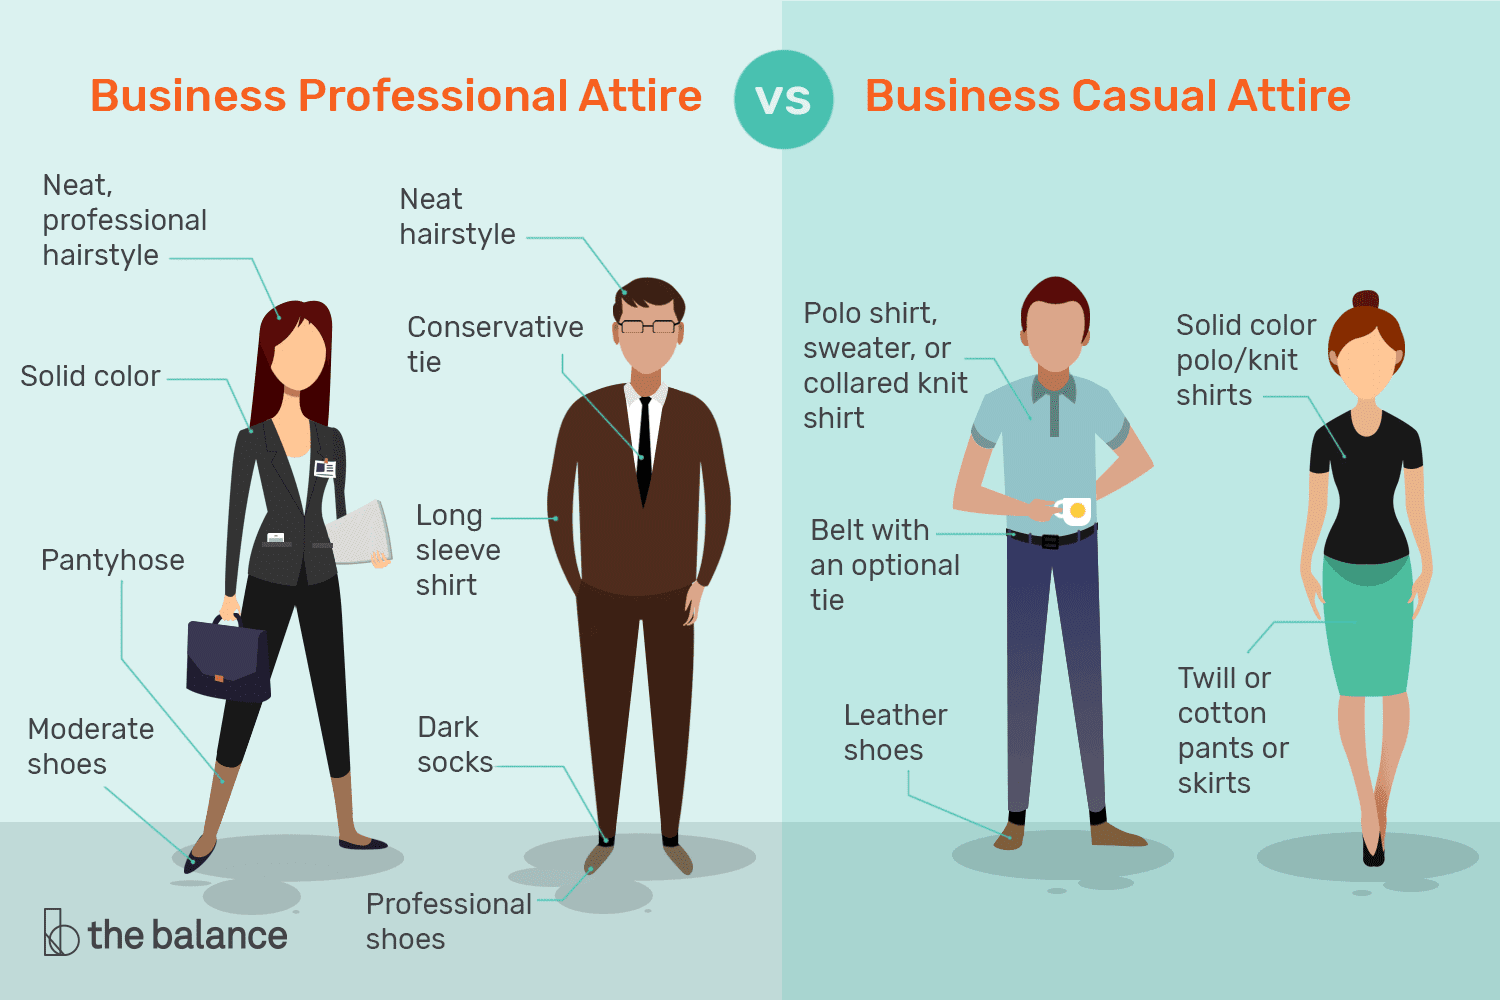 f905c50aecb Business Professional Attire vs. Business Casual Attire